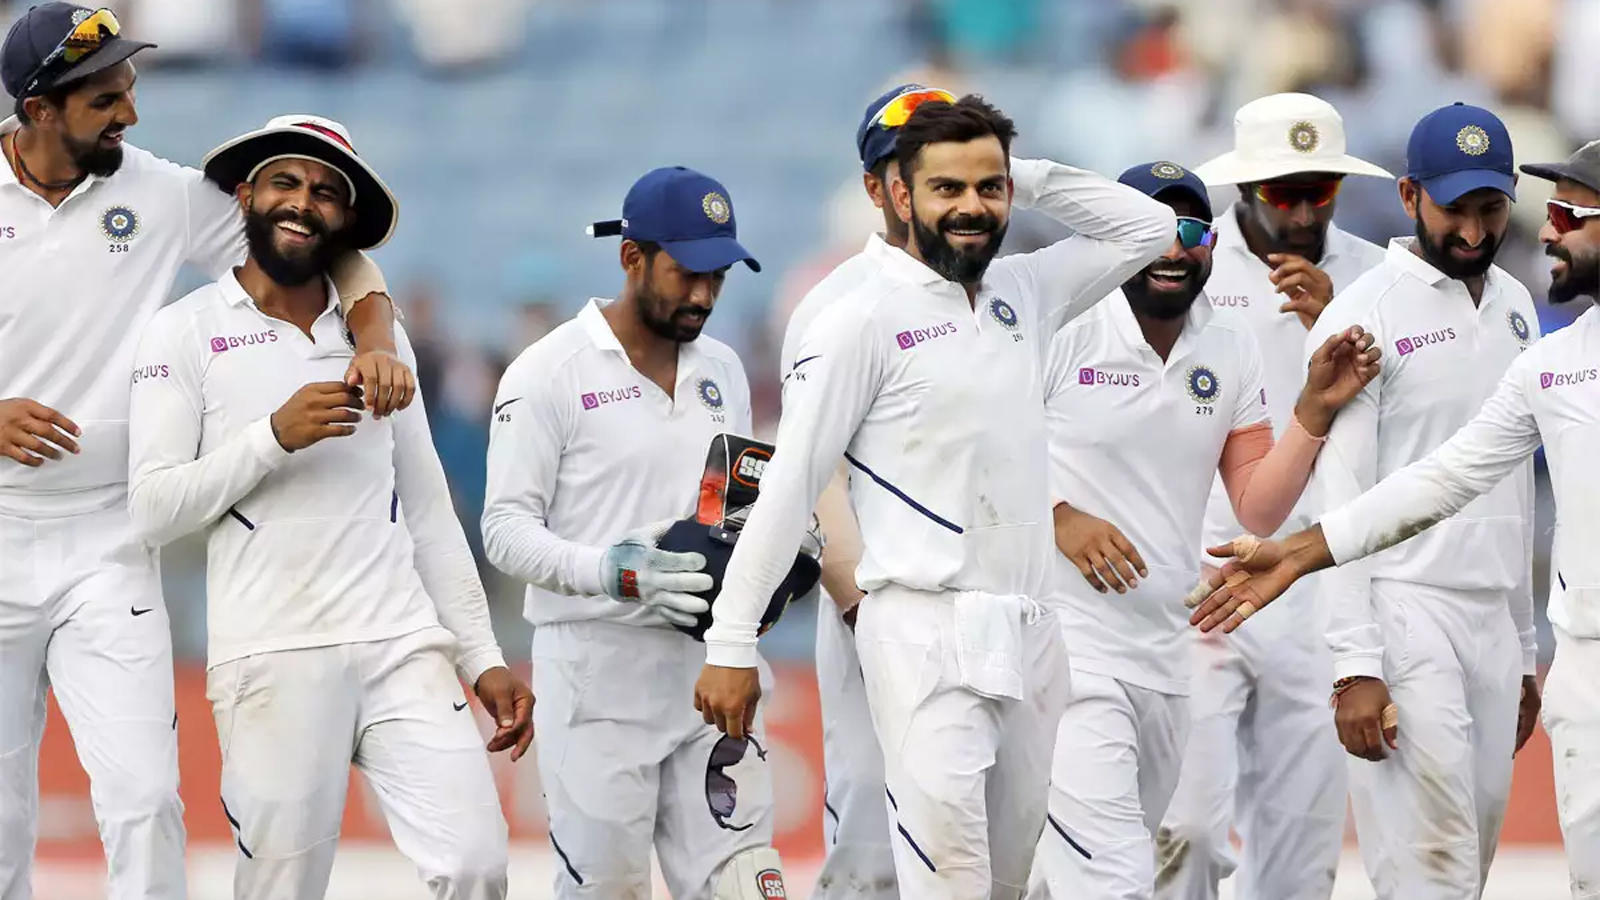 2nd-test-india-beat-south-africa-by-an-innings-and-137-runs-take-2-0-lead